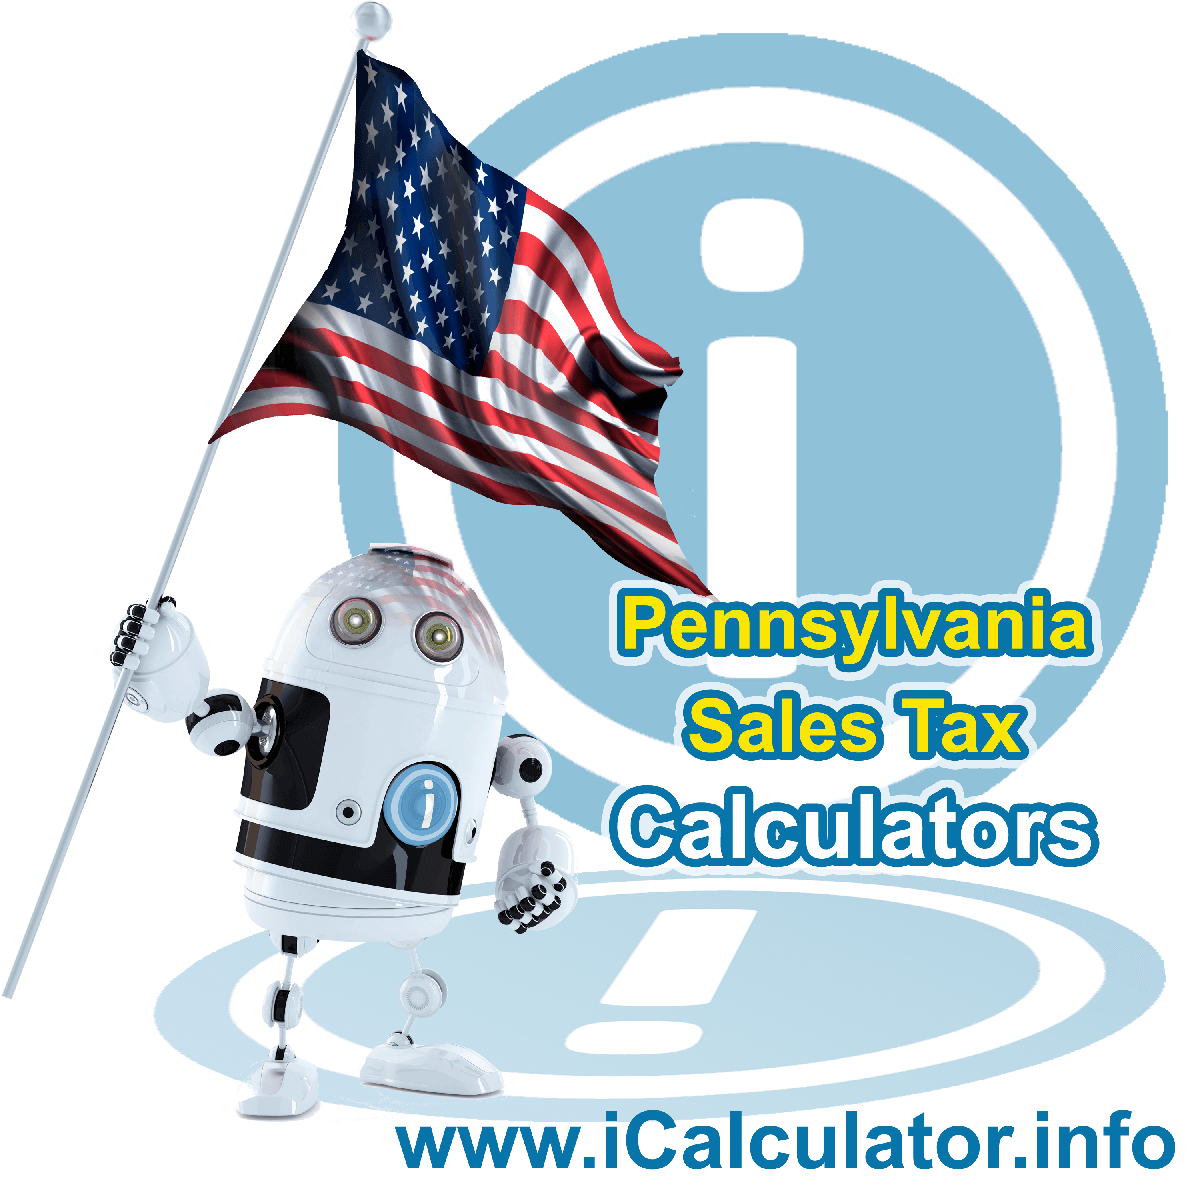 Pennsylvania Sales Tax Comparison Calculator: This image illustrates a calculator robot comparing sales tax in Pennsylvania manually using the Pennsylvania Sales Tax Formula. You can use this information to compare Sales Tax manually or use the Pennsylvania Sales Tax Comparison Calculator to calculate and compare Pennsylvania sales tax online.